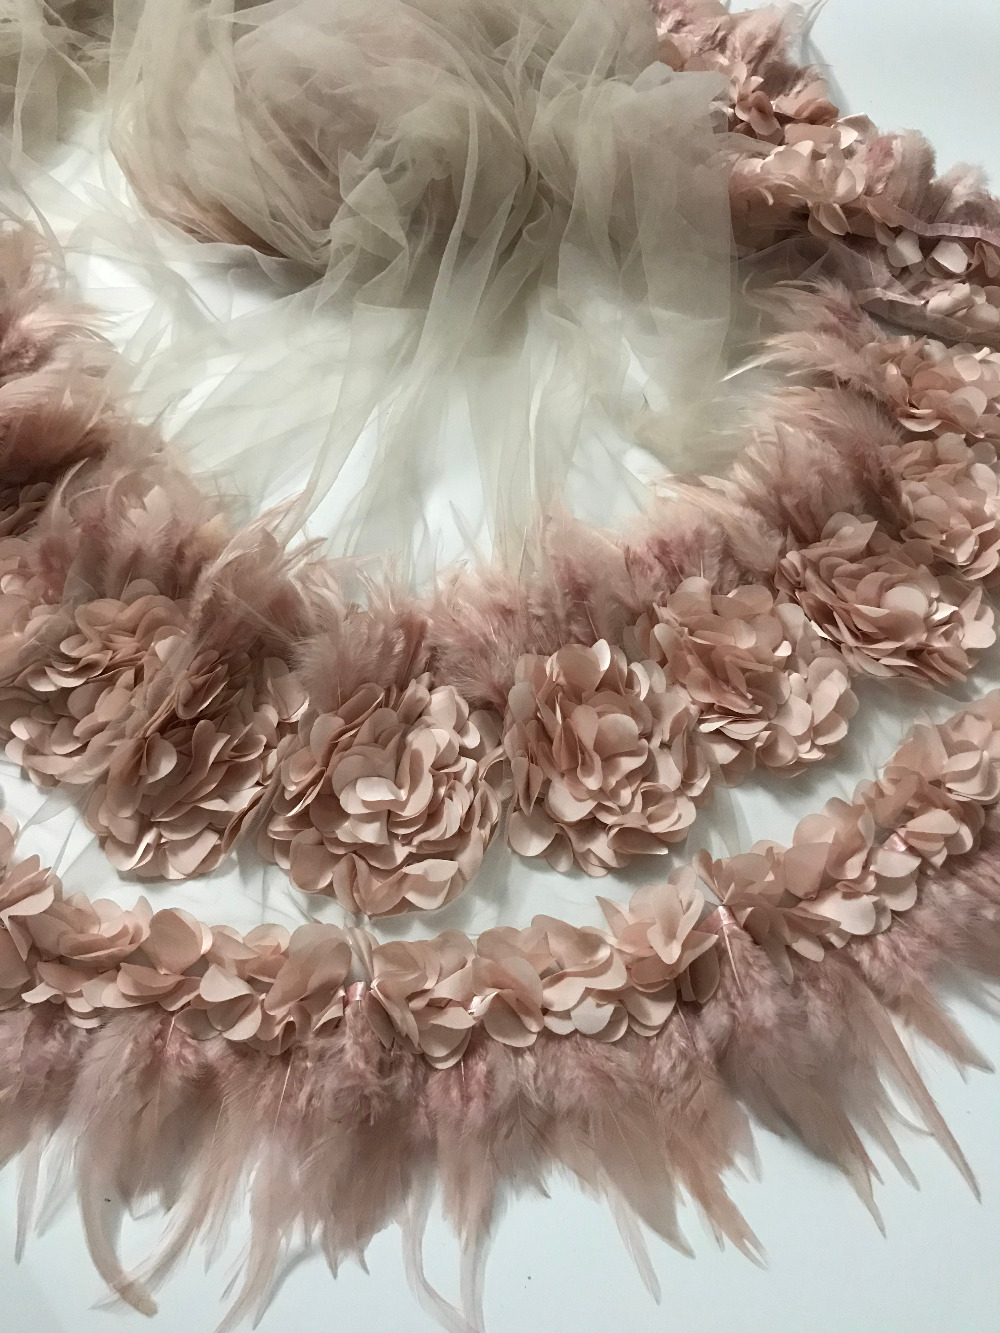 Lace fabric African High Quality Feather lace tassel Fabric handmade,French Voile Mesh Lace Fabric for wedding dresses